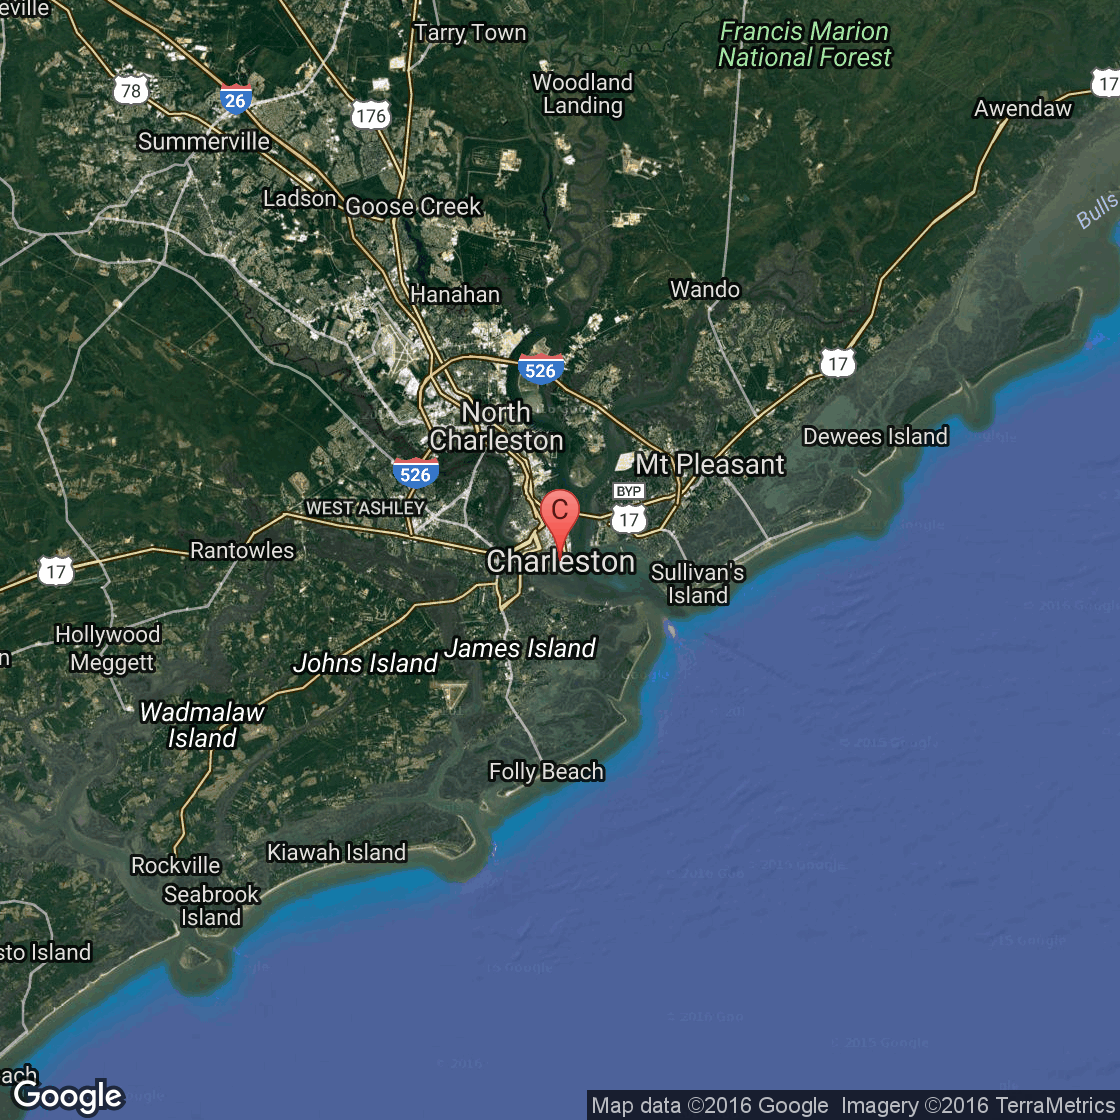 map of hotels in gulf shores, map of atlantic city nj hotels, map of bellevue wa hotels, map of minneapolis mn hotels, map of havana cuba hotels, map of hotels in salt lake city, map of hotels in lexington ky, map of san diego ca hotels, map of historic charleston hotels, map of downtown charleston hotels, map of st augustine fl hotels, map of hotels in rehoboth beach, map of syracuse hotels, map of grand forks nd hotels, map of hotels philadelphia pa, map of st. cloud mn hotels, map of rapid city sd hotels, map of busch gardens tampa fl, map of gulfport ms hotels, map of roanoke va hotels, on charleston sc map of hotels